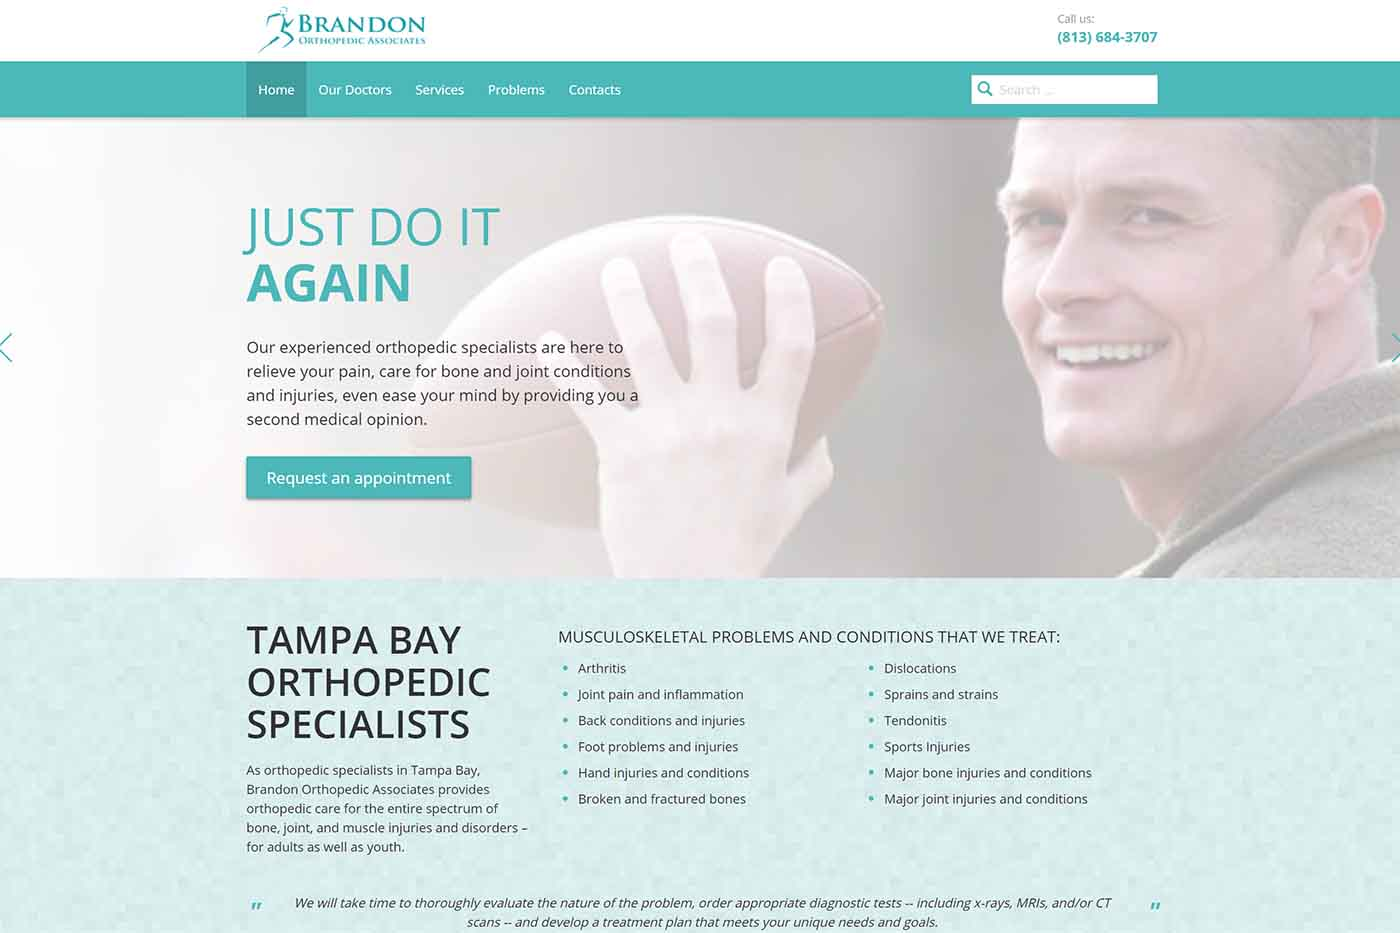 Brandon Orthopedics